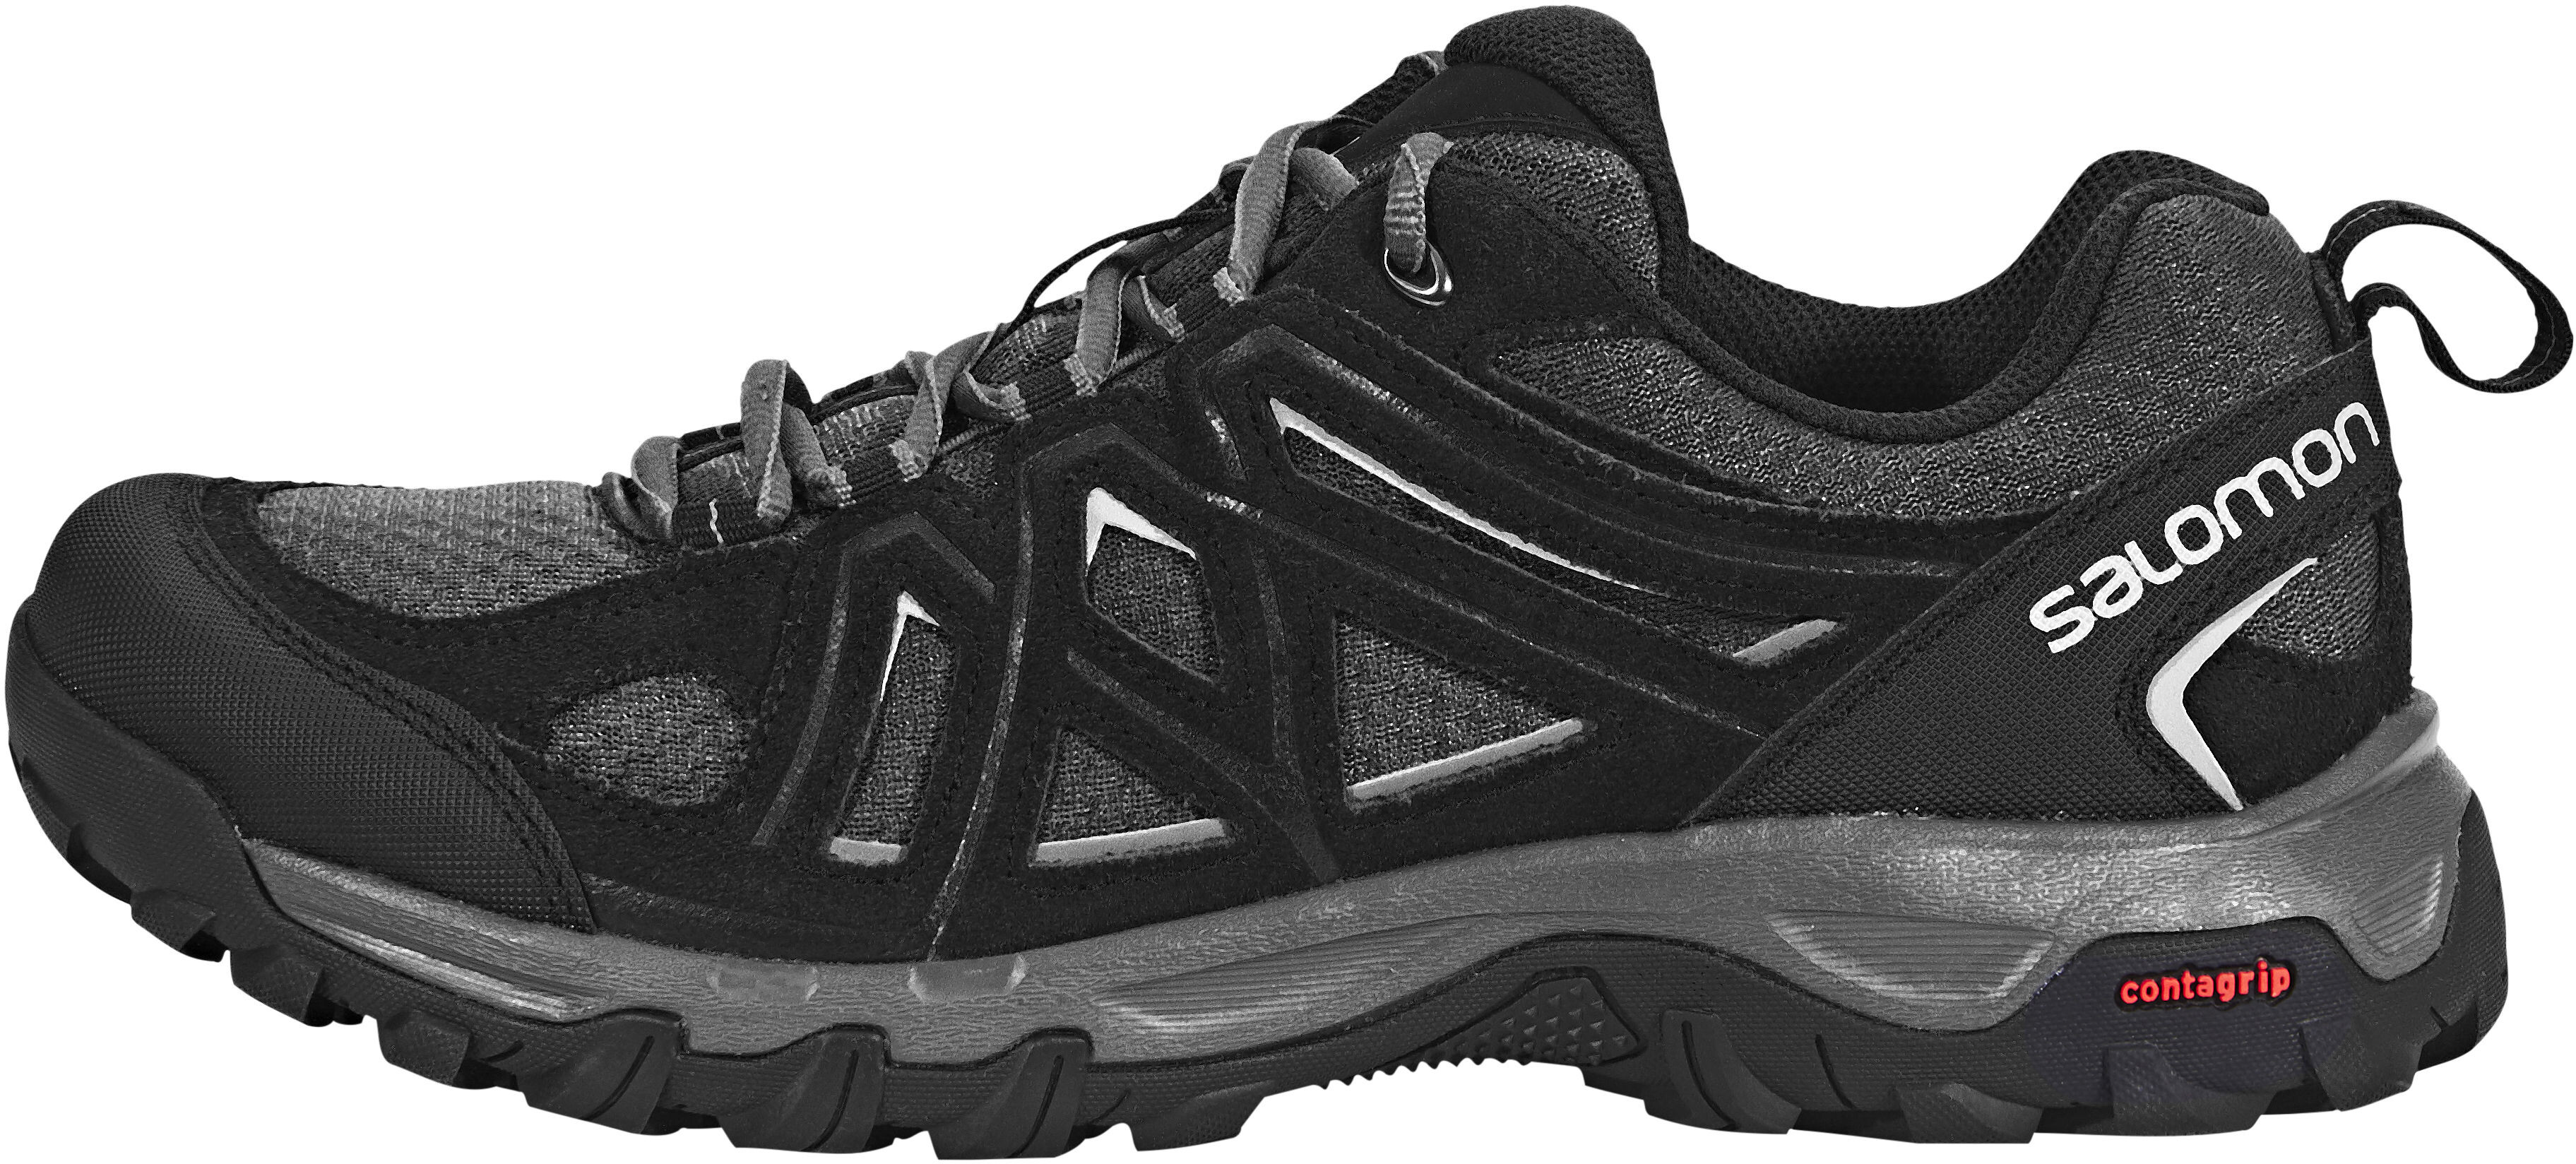 aced08ad59e2 Salomon Evasion 2 Aero Shoes Men Black Magnet Alloy